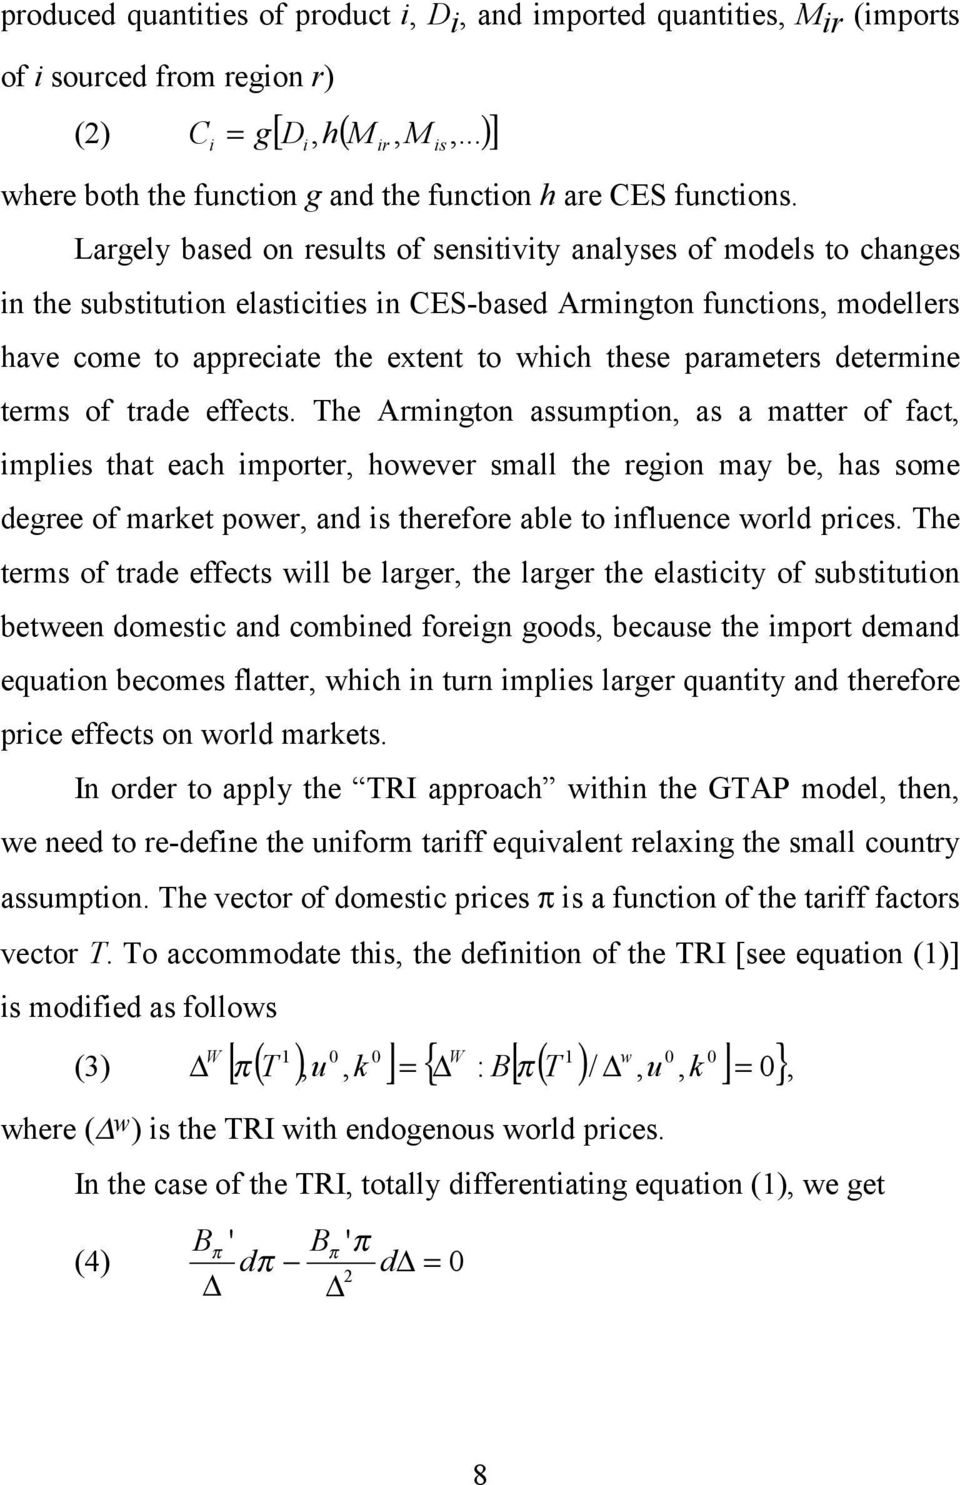 Largely based on results of sensitivity analyses of models to changes in the substitution elasticities in CES-based Armington functions, modellers have come to appreciate the extent to which these